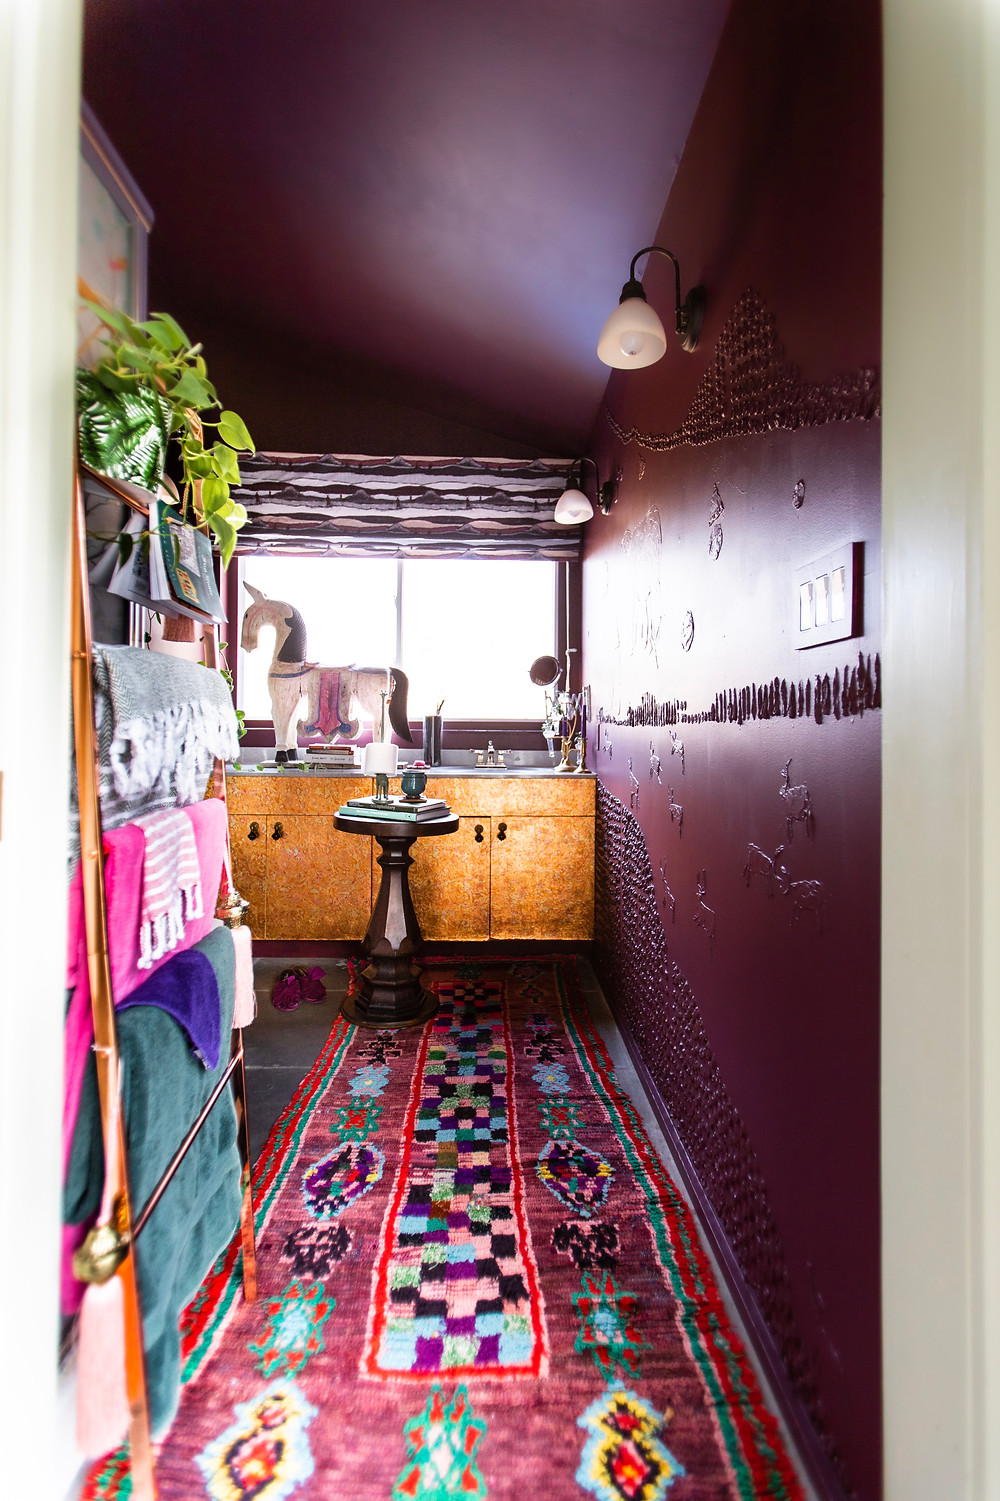 Brinjal by farrow and ball, copper leaf cabinet, vintage moroccan rug, moody bathroom